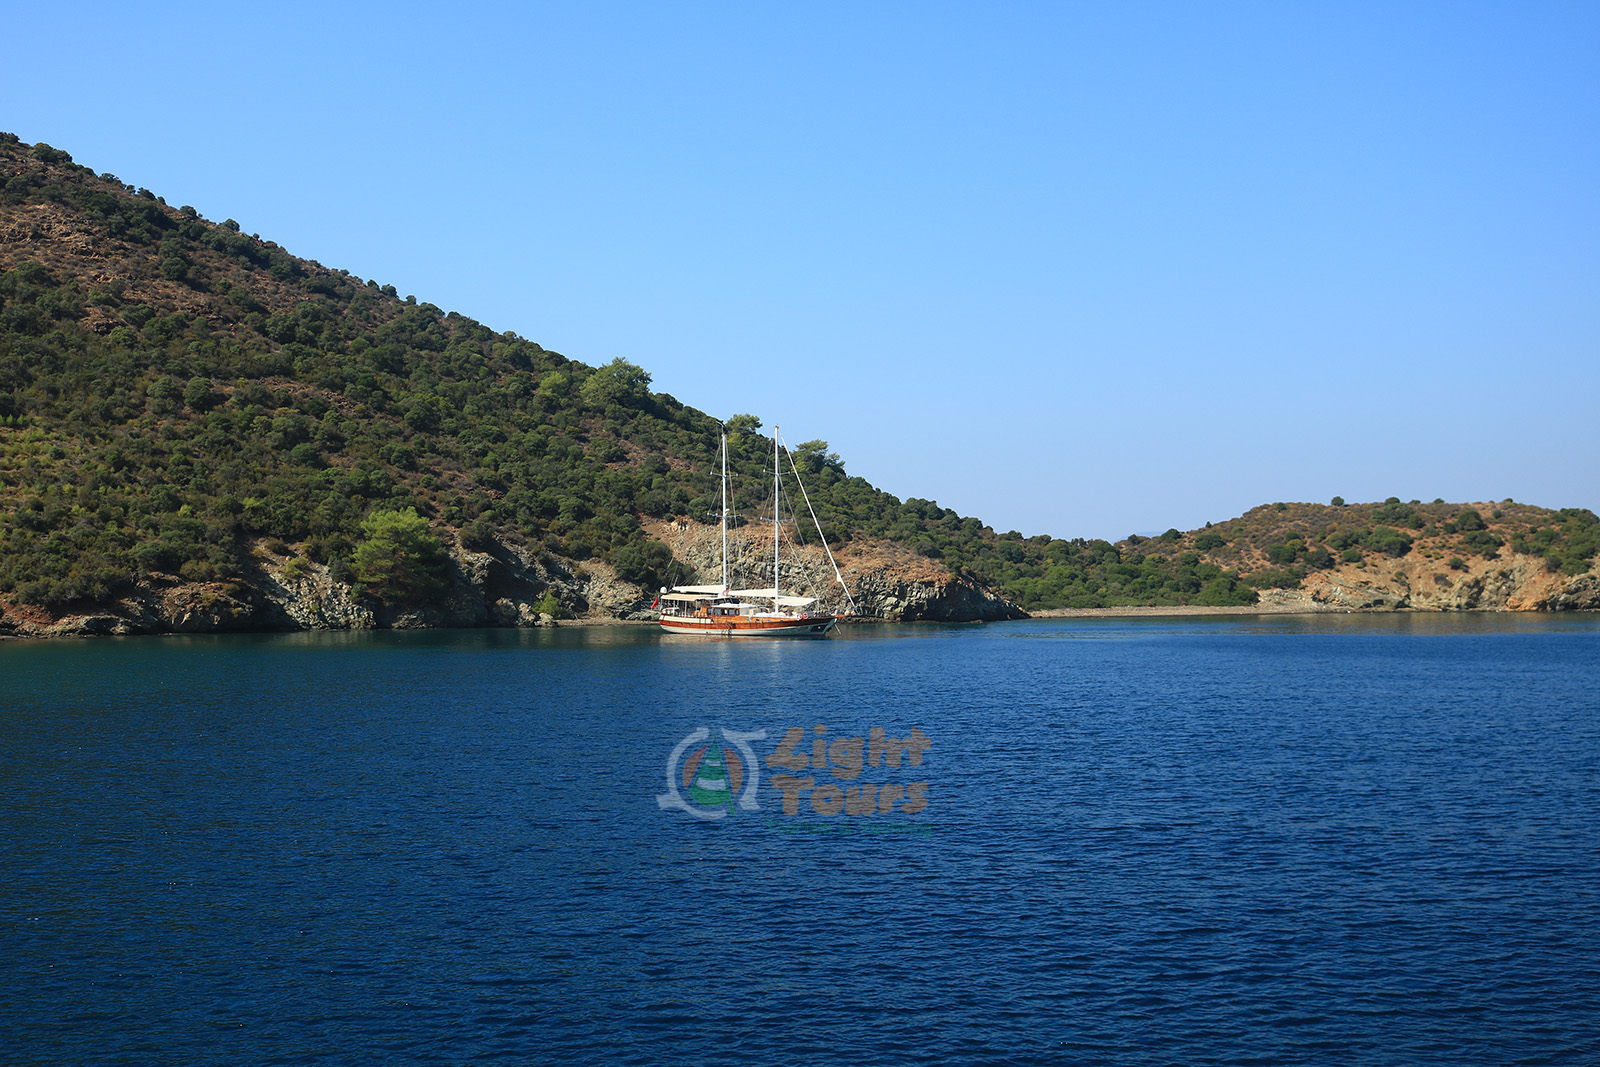 12 Islands Boat Tour, Fethiye, Rabbit Island, Gocek Island, Yassica Island, Aquarium Bay, Red Island,Light Tours Daily Tours, Discount Tours, Package Tours 356